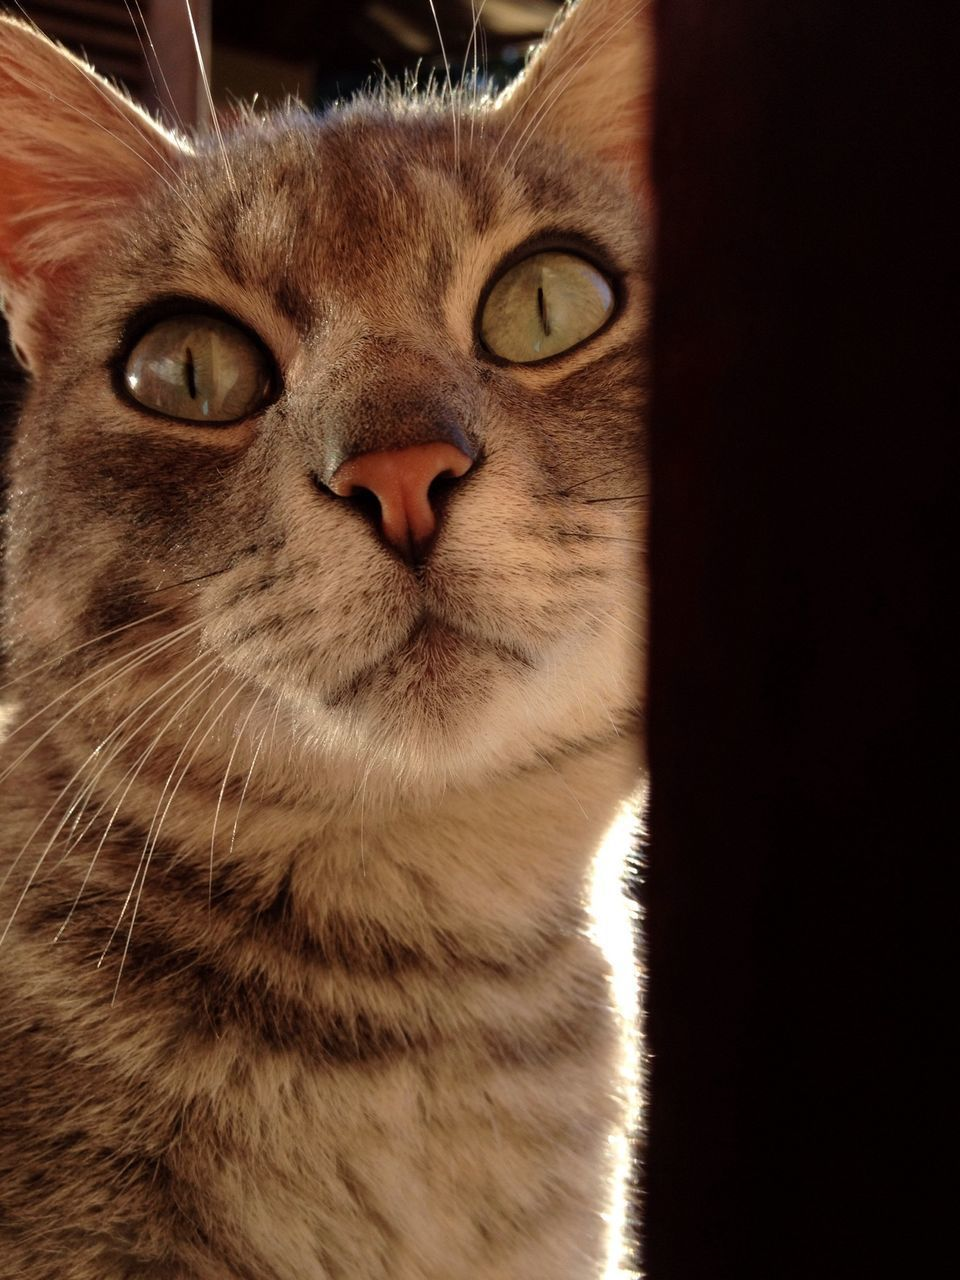 one animal, domestic animals, pets, animal themes, domestic cat, mammal, cat, feline, whisker, animal head, indoors, close-up, animal eye, portrait, looking at camera, staring, animal body part, alertness, front view